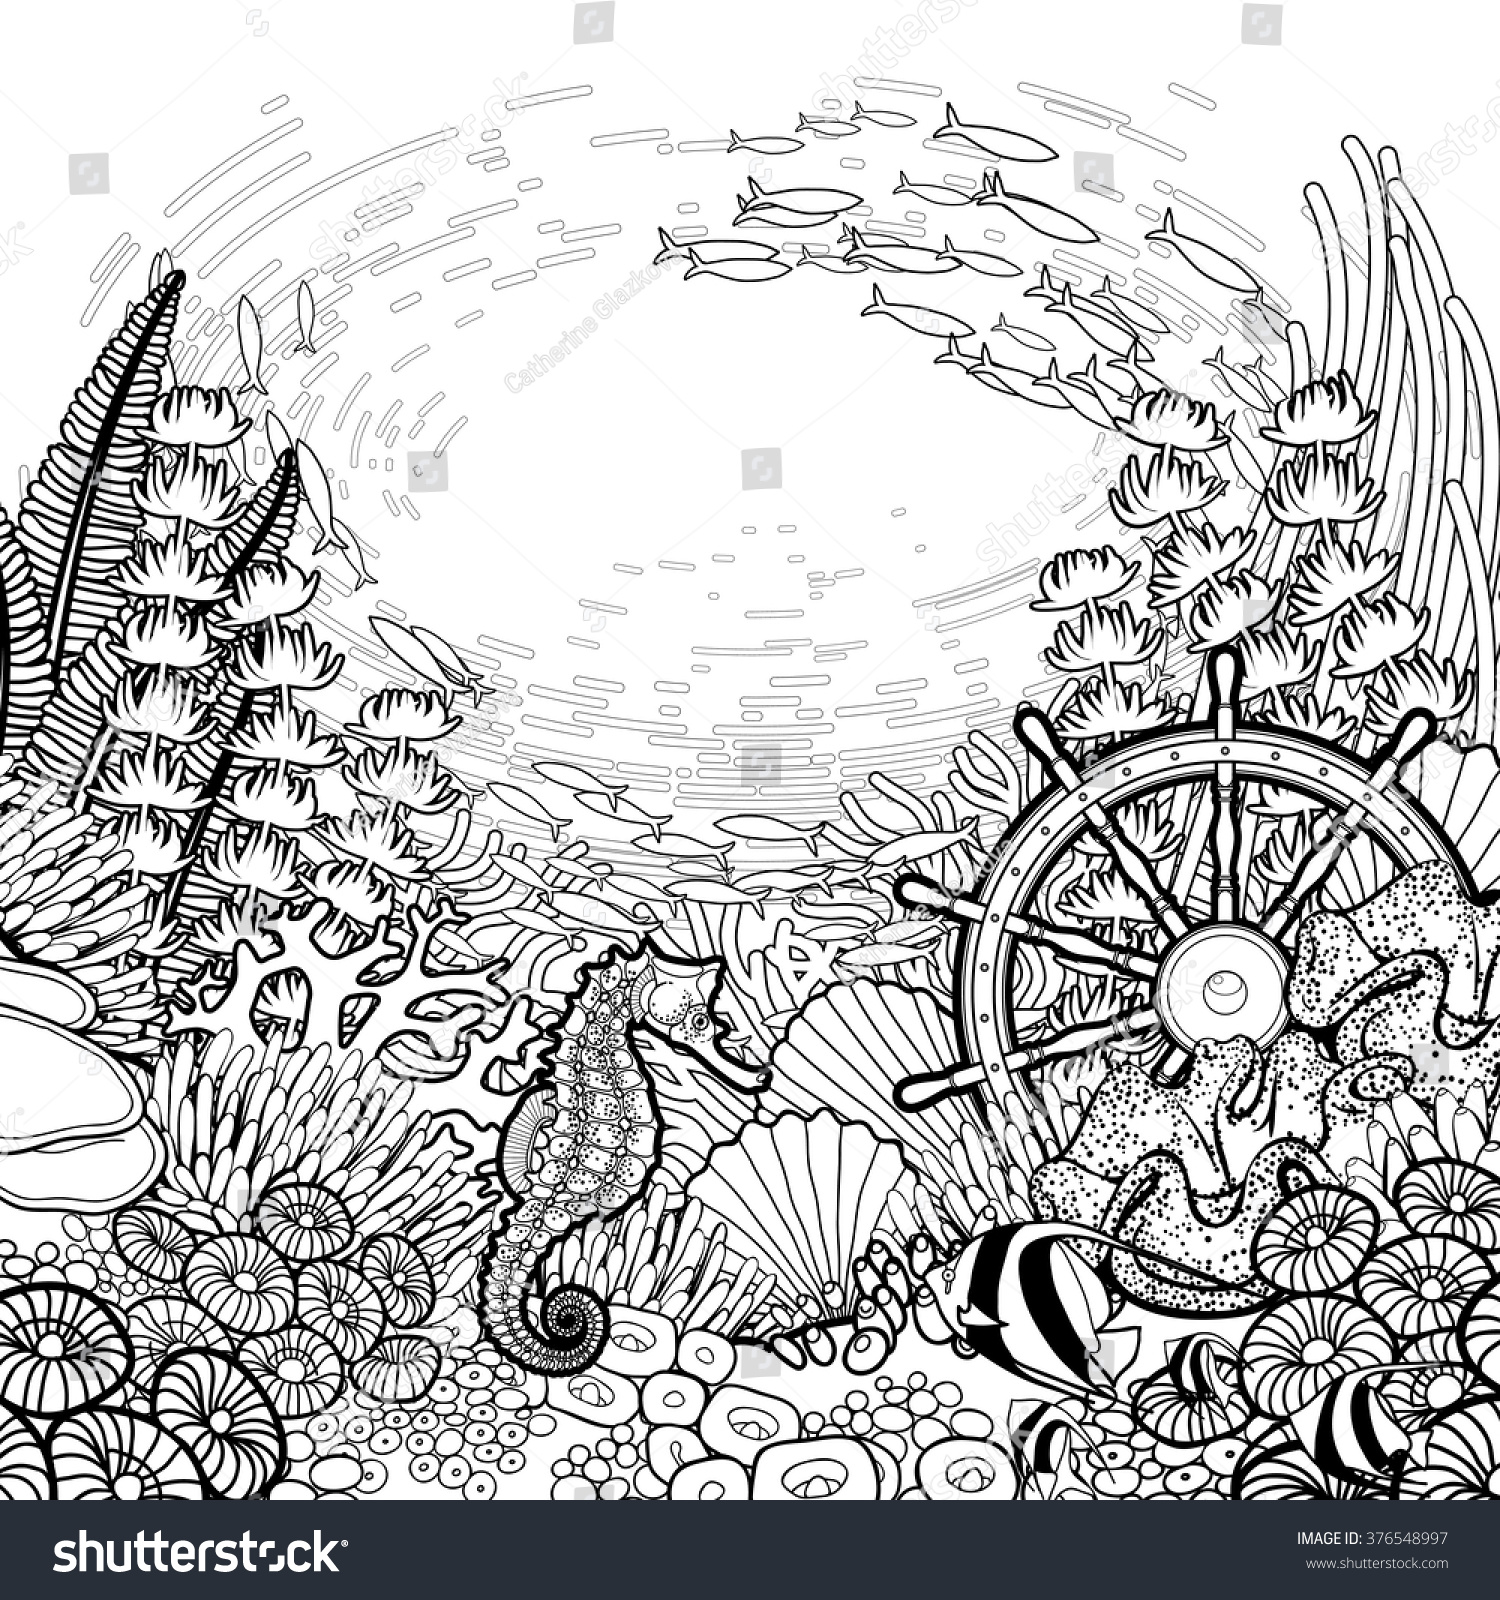 graphic coral reef with sea horse ocean fish and sunken ship helm drawn in line